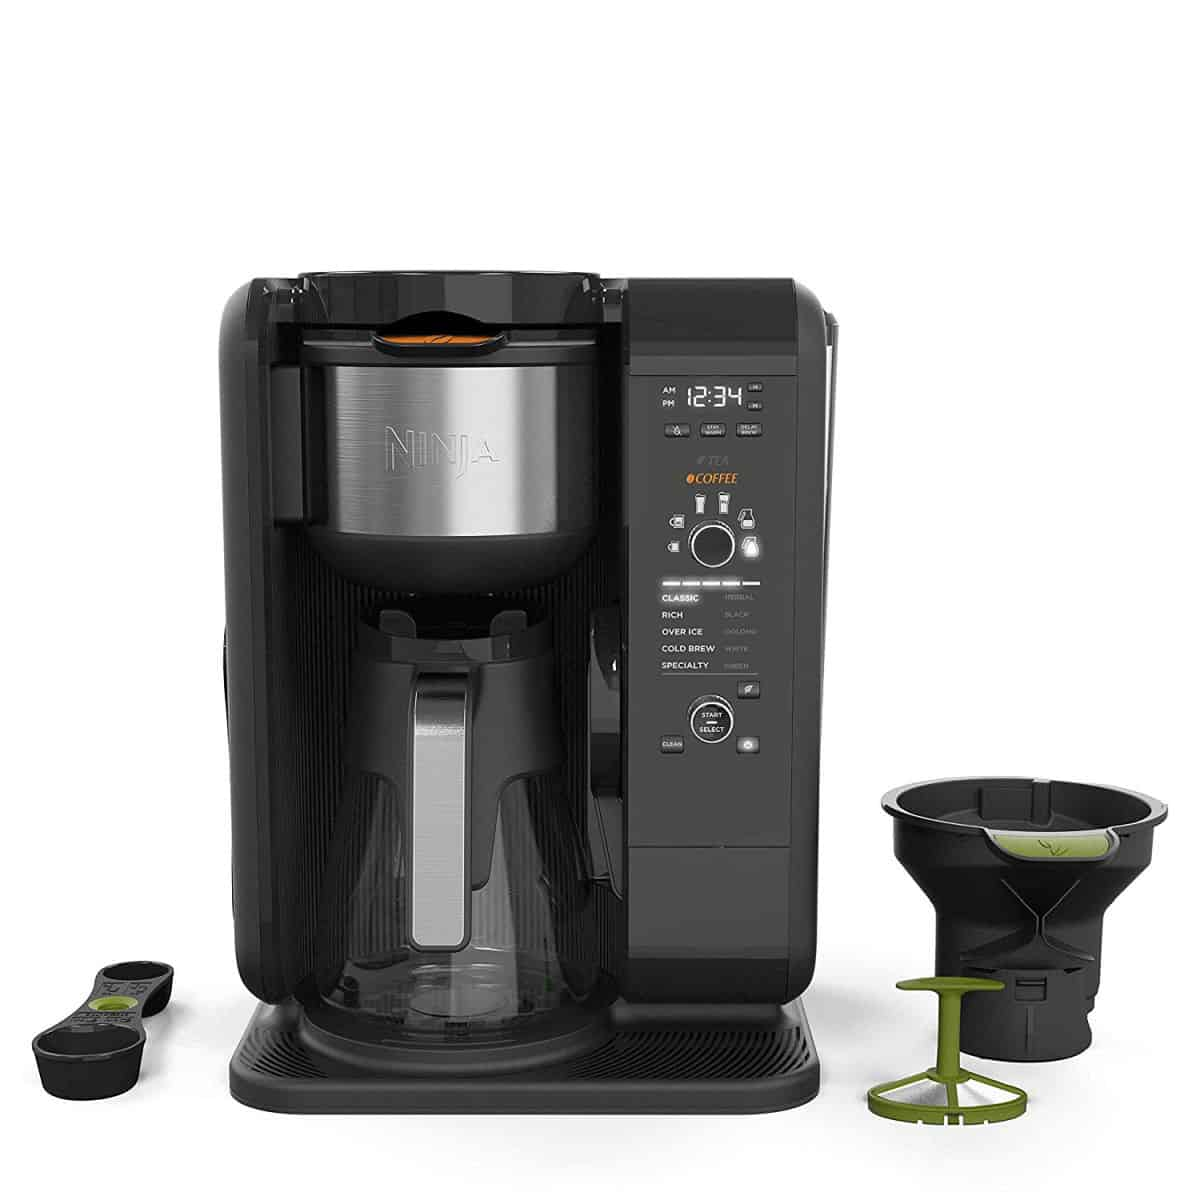 Ninja Hot and Cold Brewed System, Auto-iQ Tea and Coffee Maker | Hey Alexa, Get These 21 Kitchen Appliances On Amazon